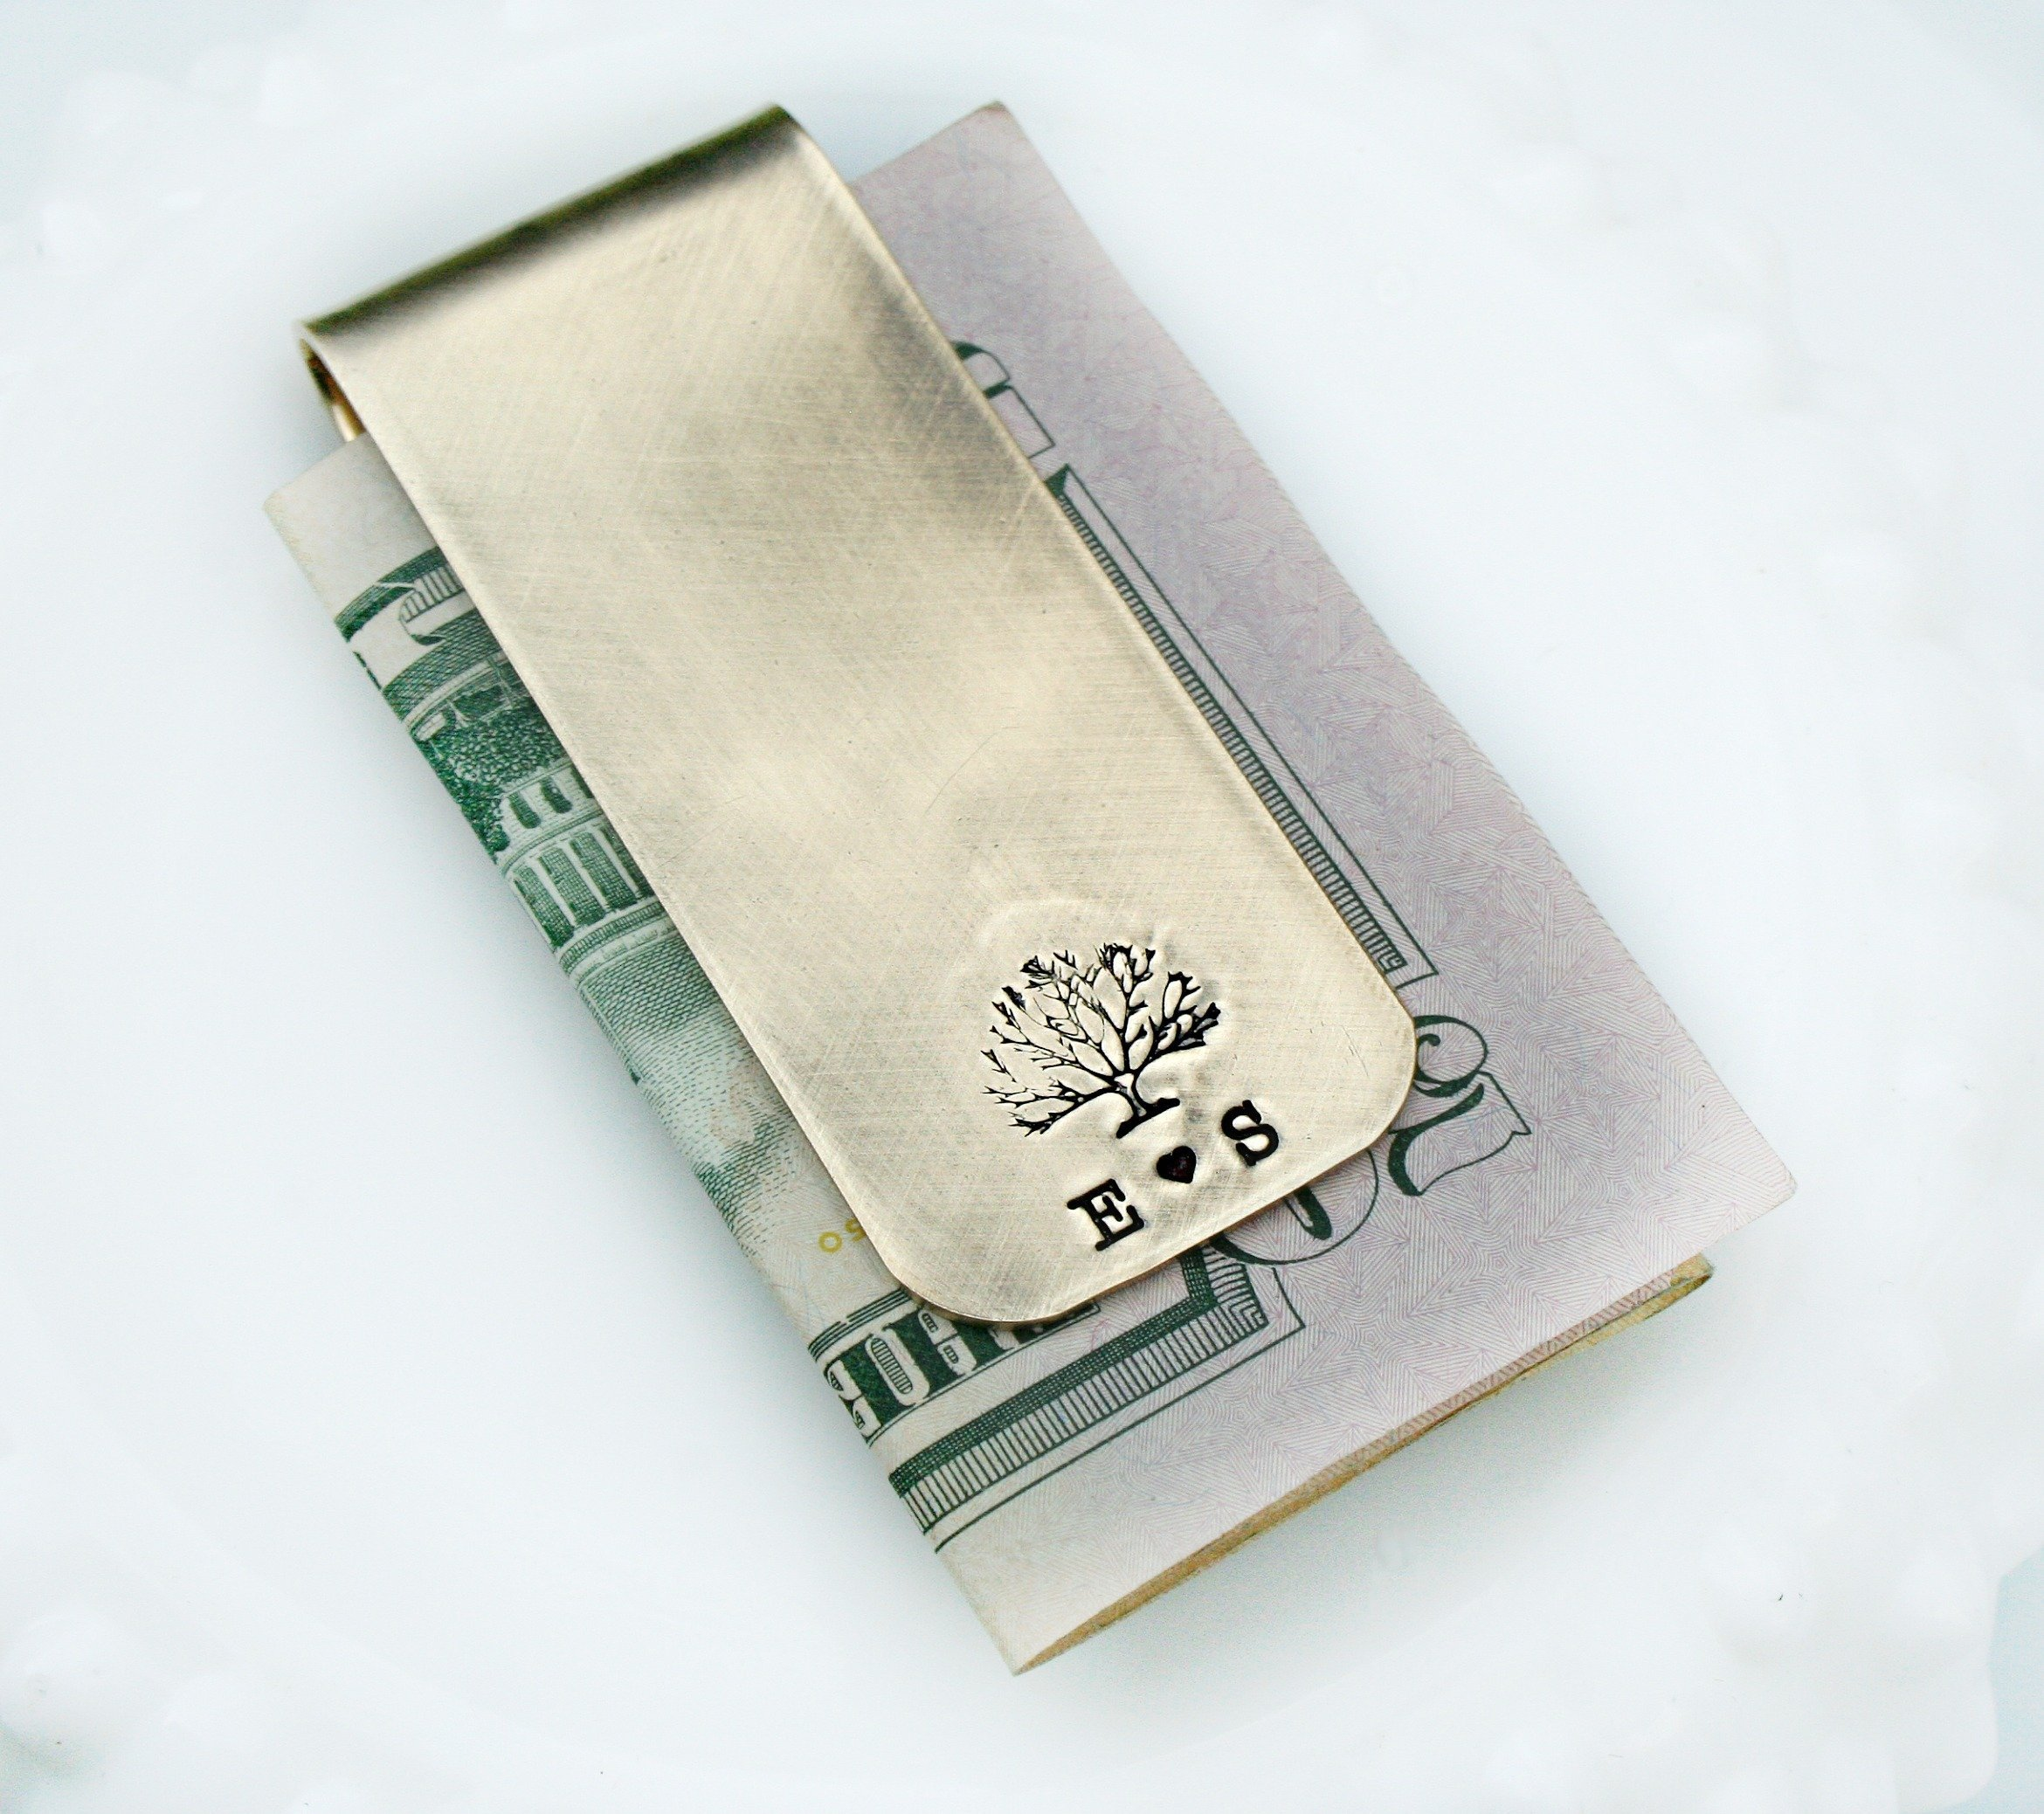 Personalized Gold Brass Rustic Money Clip for Him - Stamped Custom Money Clip for Dad - Monogrammed Gift Groom Husband Dad - Groomsmen Gift